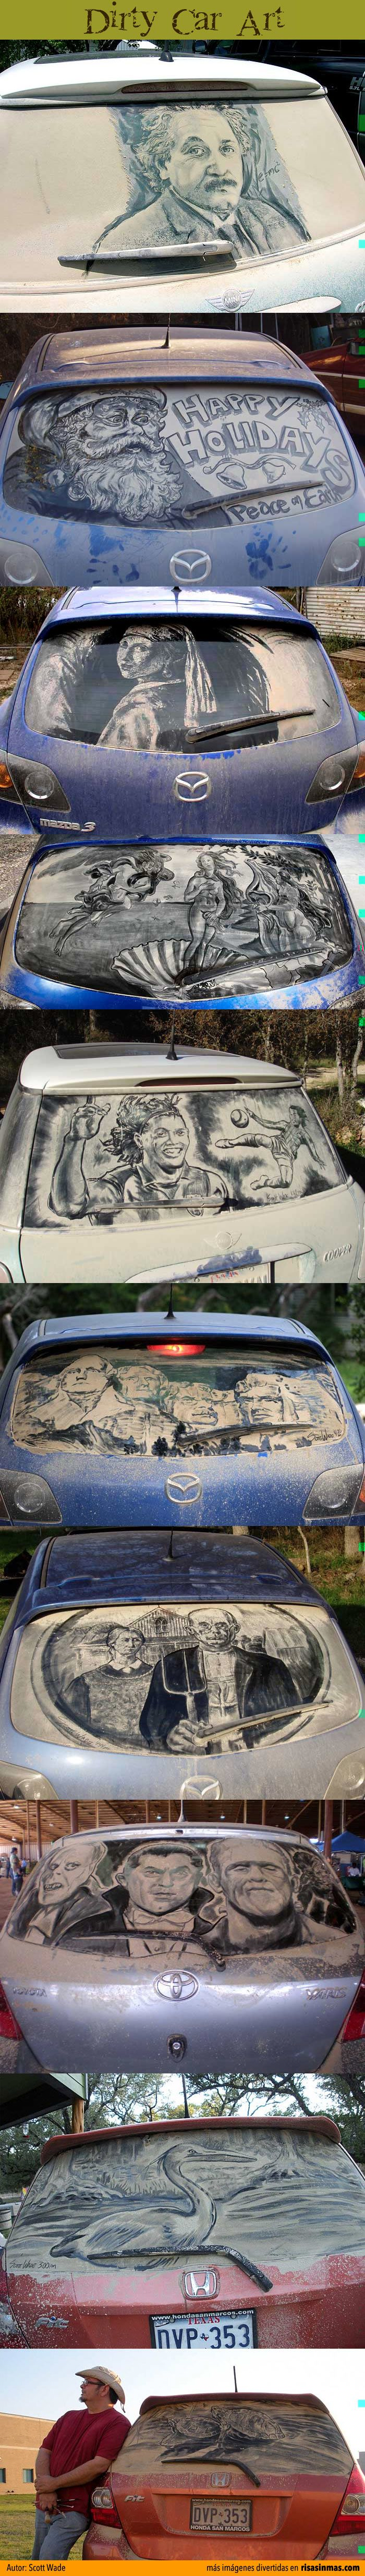 Best DIRTY CAR ART Images On Pinterest Window Art Lwren - Scott wade makes wonderful art dusty car windows